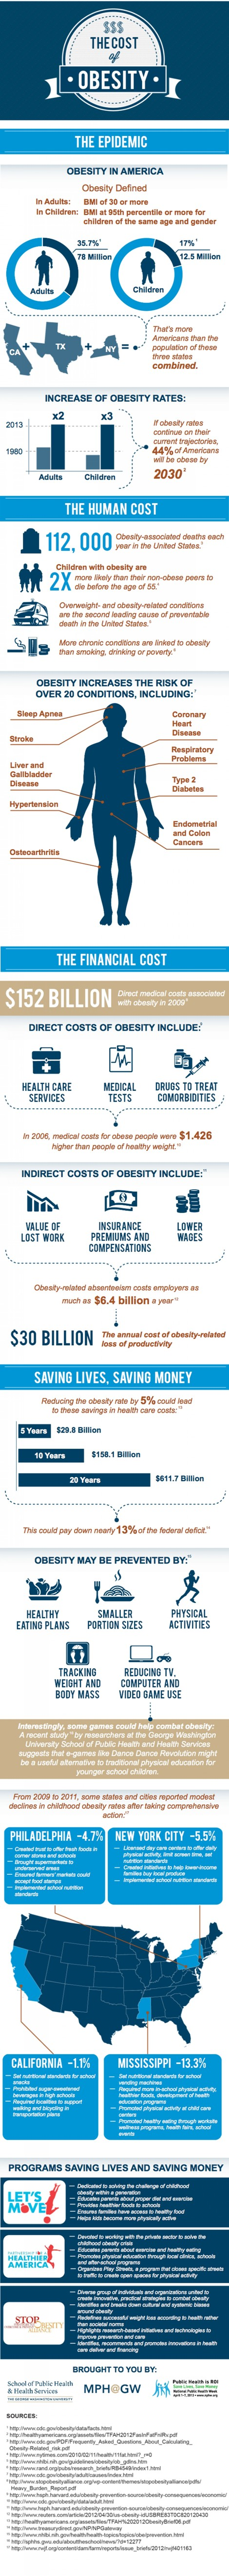 10. The Cost of Obesity